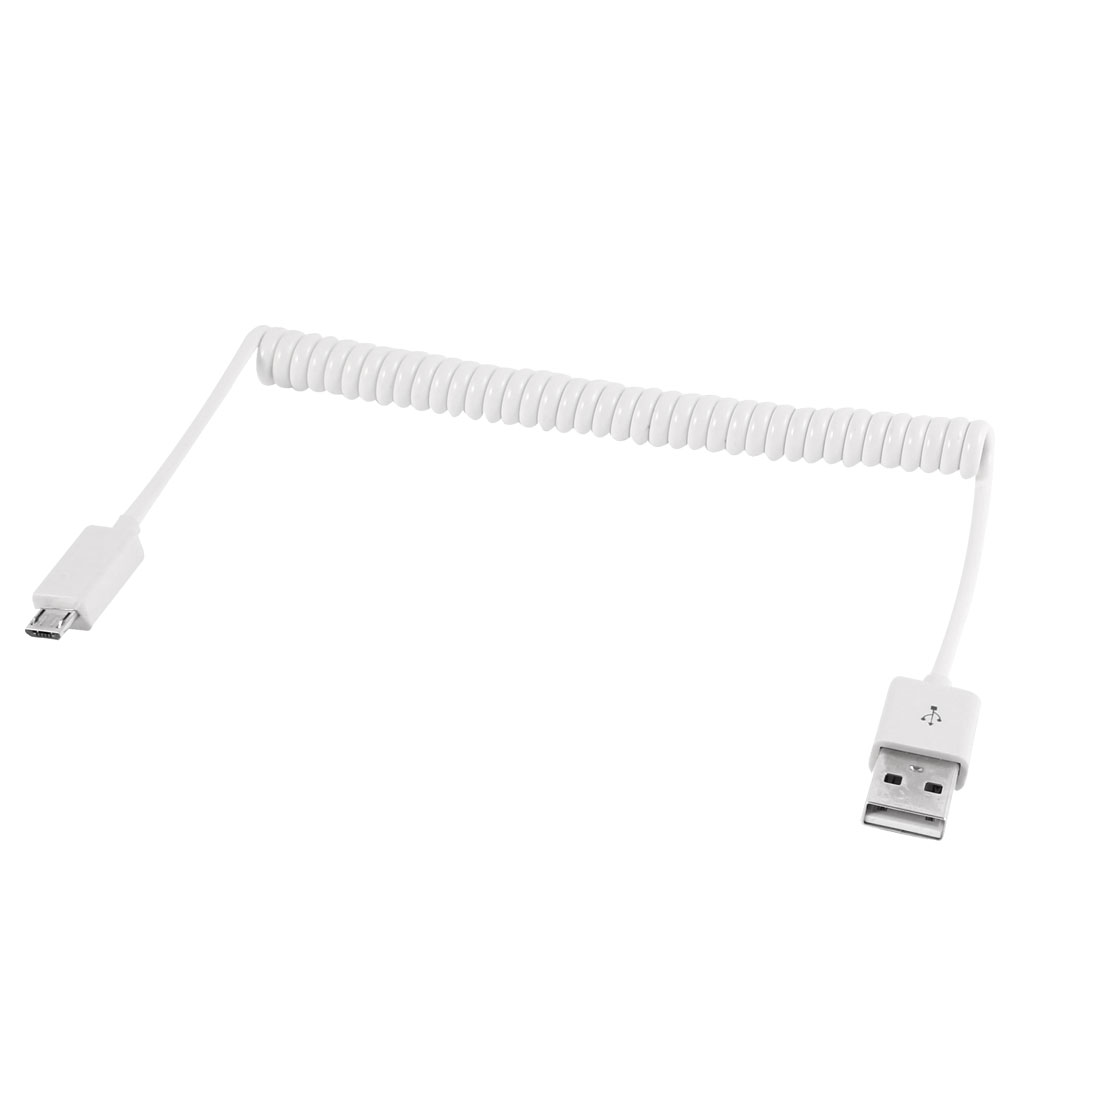 White Coil Cord USB 2.0 Male to Micro B 5 Pin Male Data Sync Charger Cable